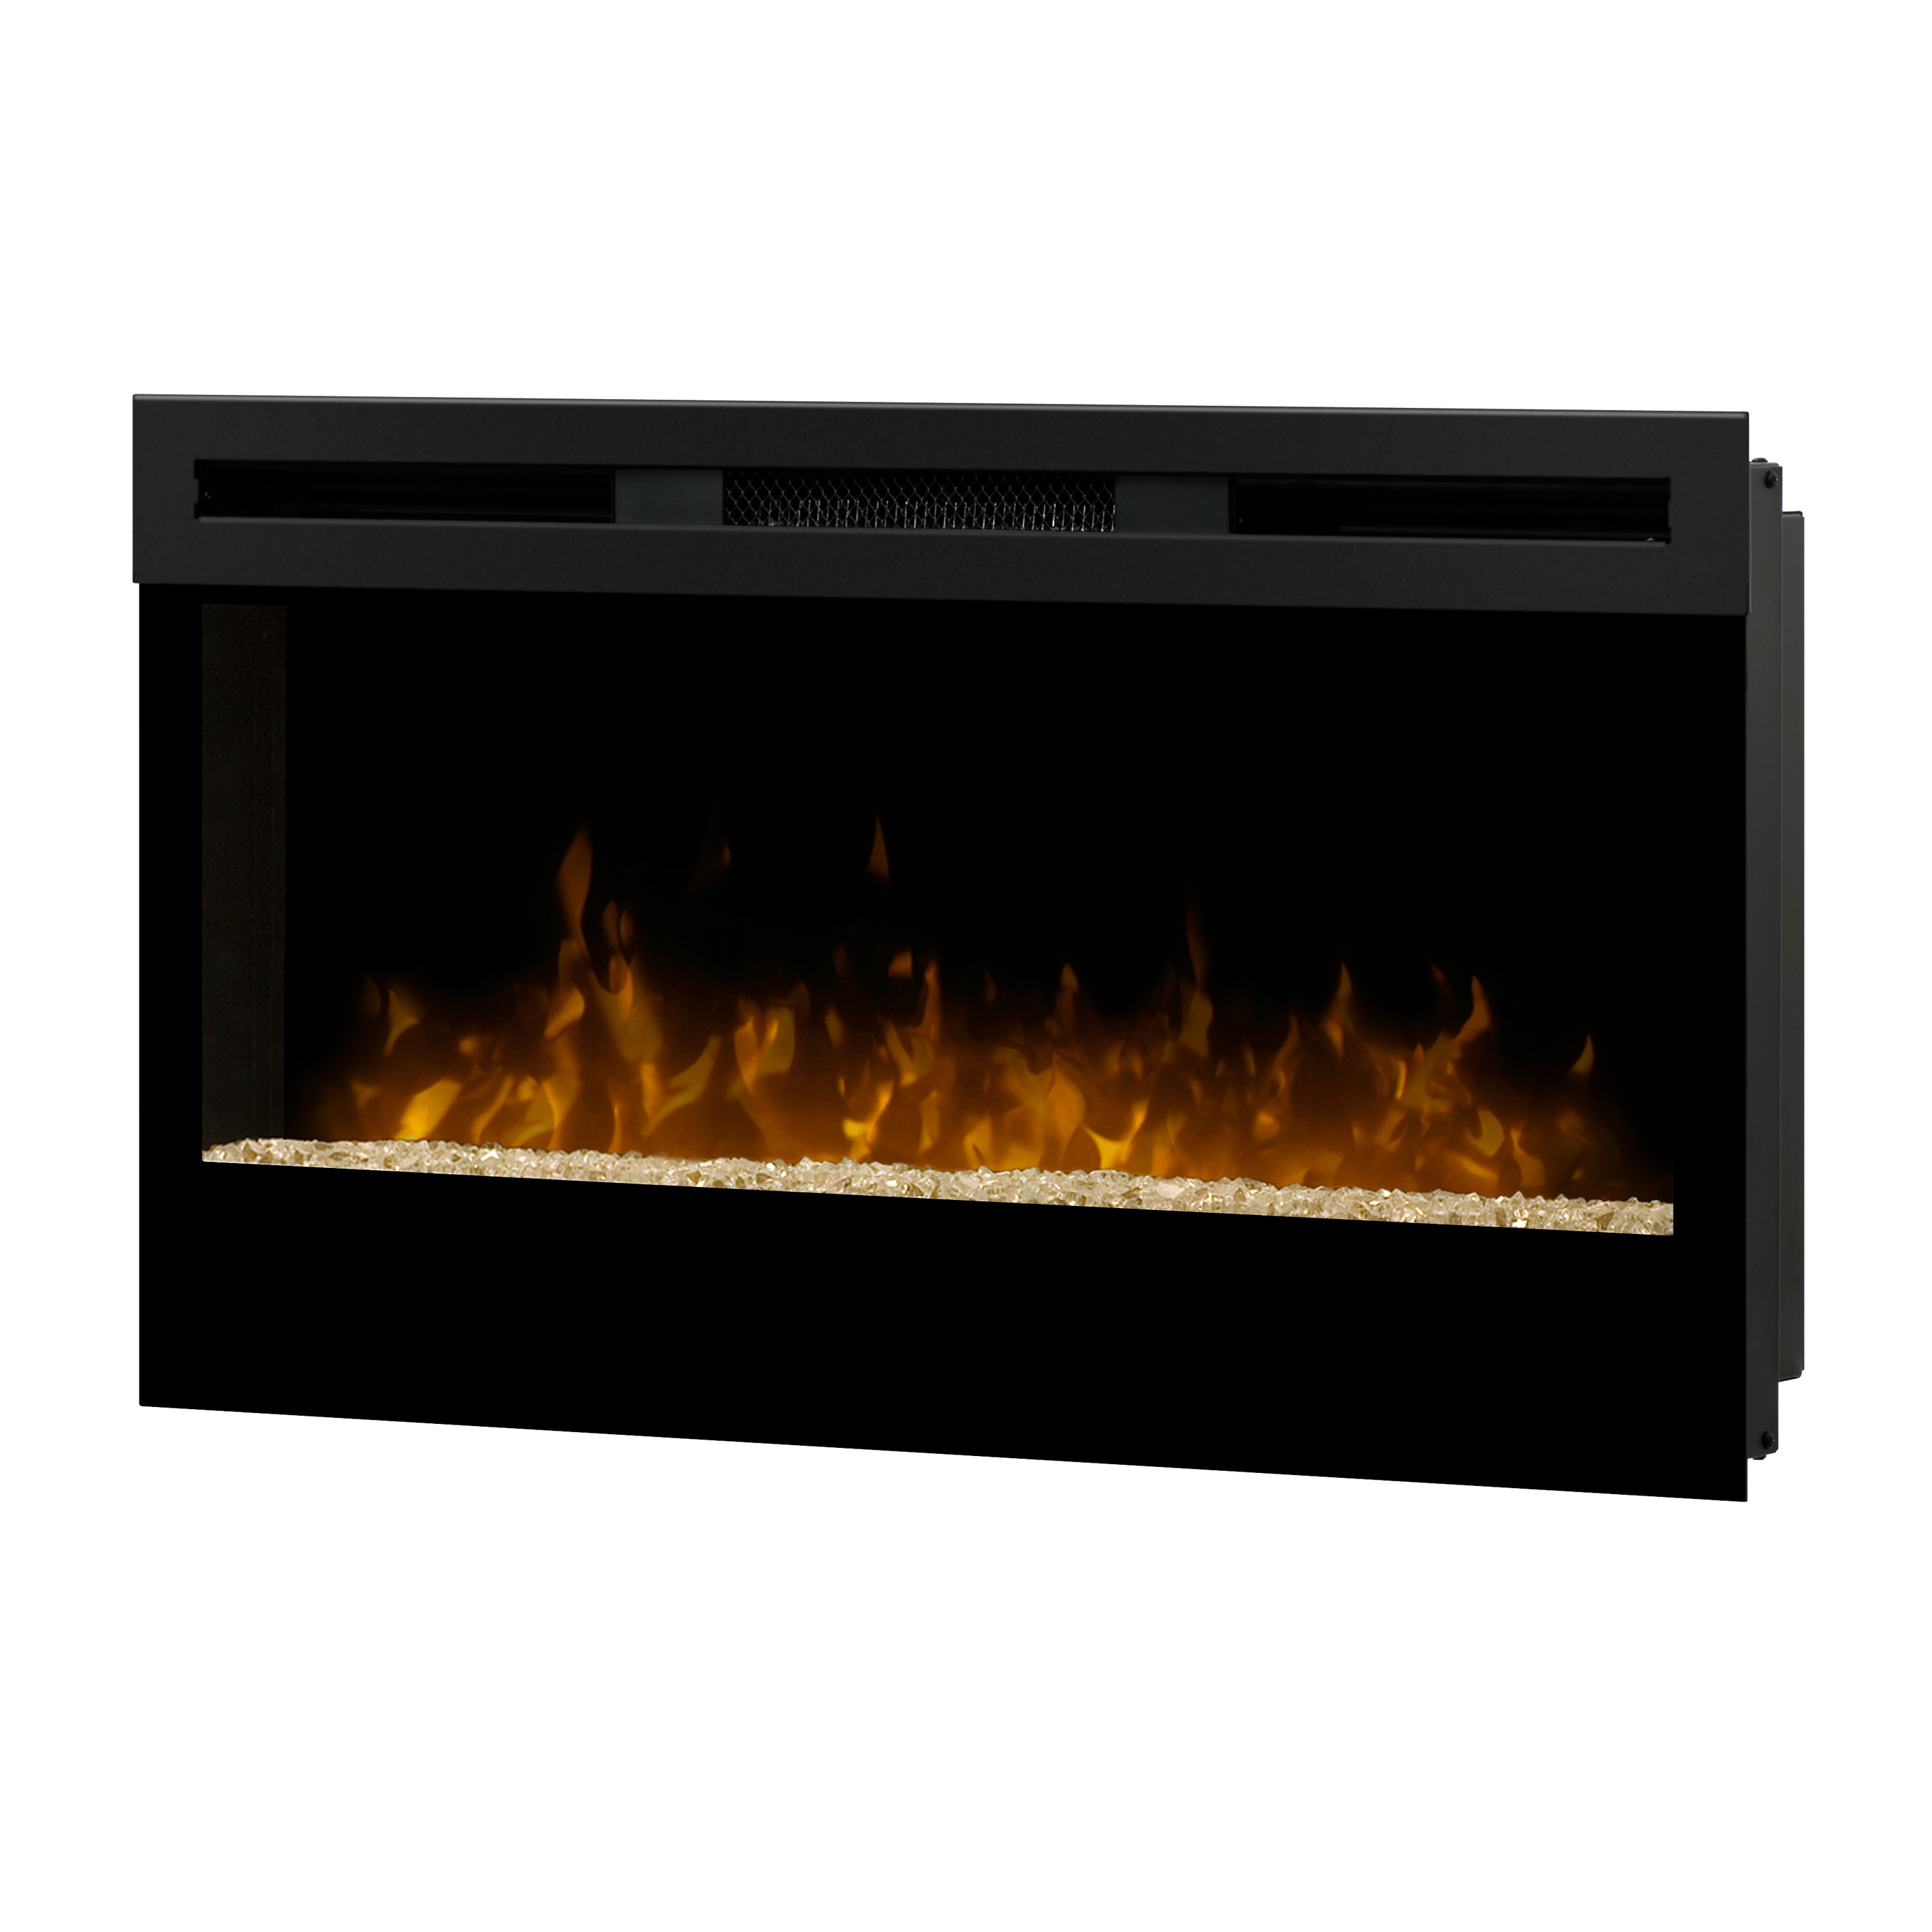 Classy muskoka electric fireplace for home furniture with muskoka electric fireplace insert